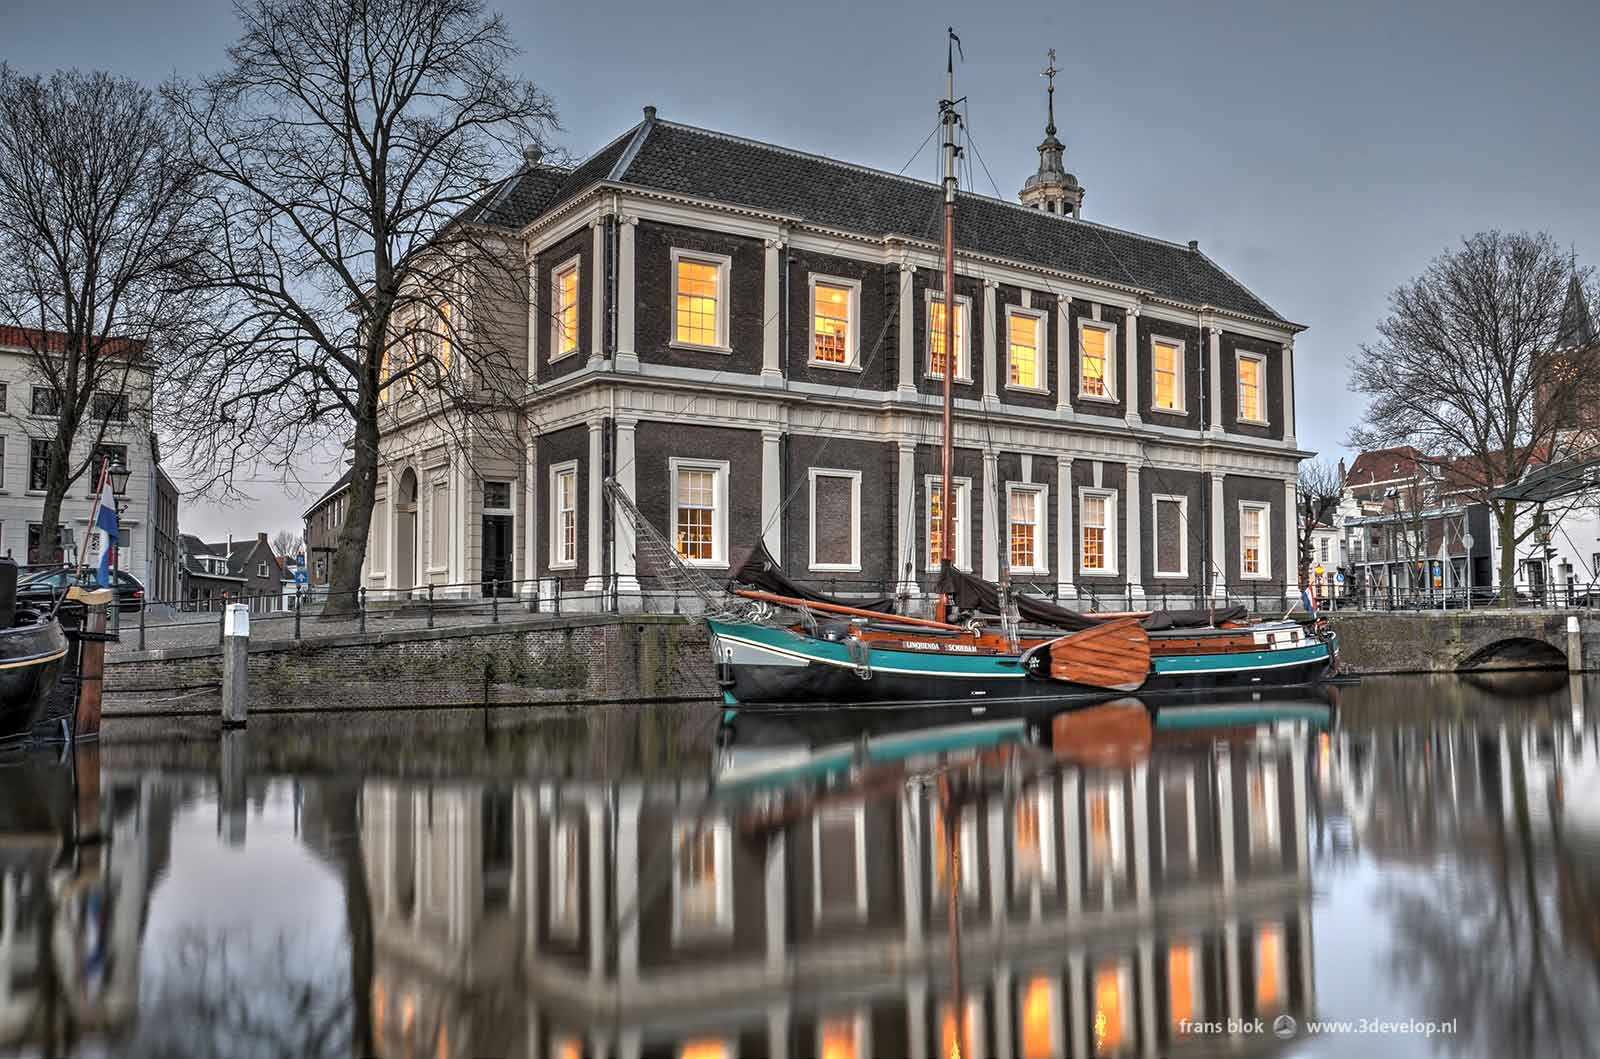 Image of the Corn Exchange/Library in Schiedam, with a historic vessel in the water of the canal, after editing in Photomatix Pro